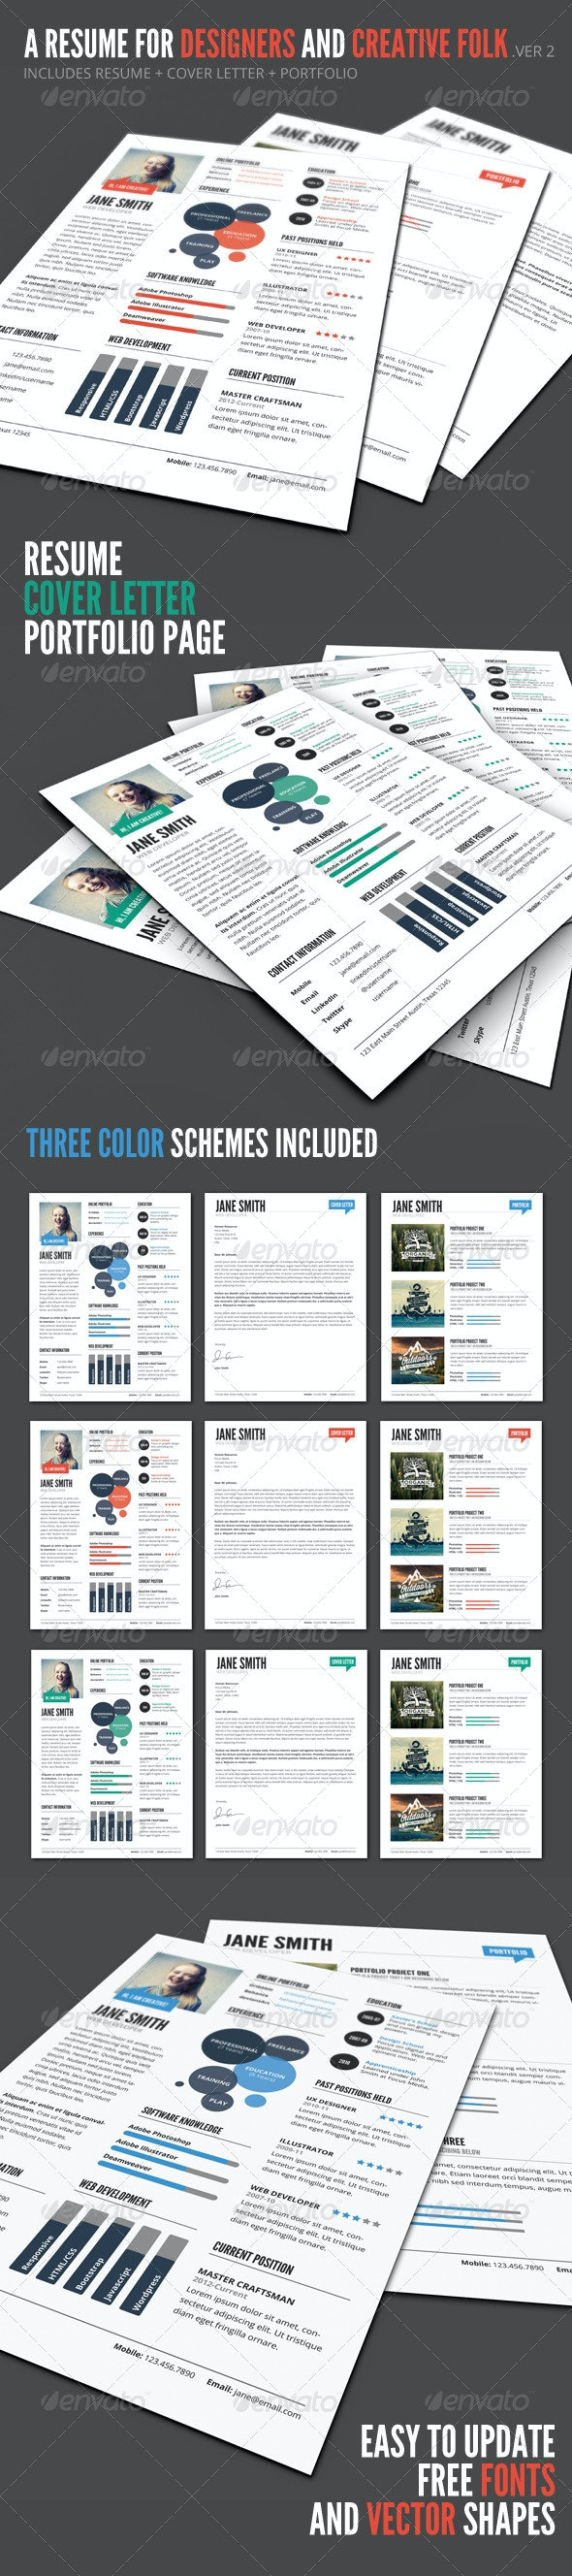 InfoGraphic Style Resume Template - Ver 2 - Resumes Stationery